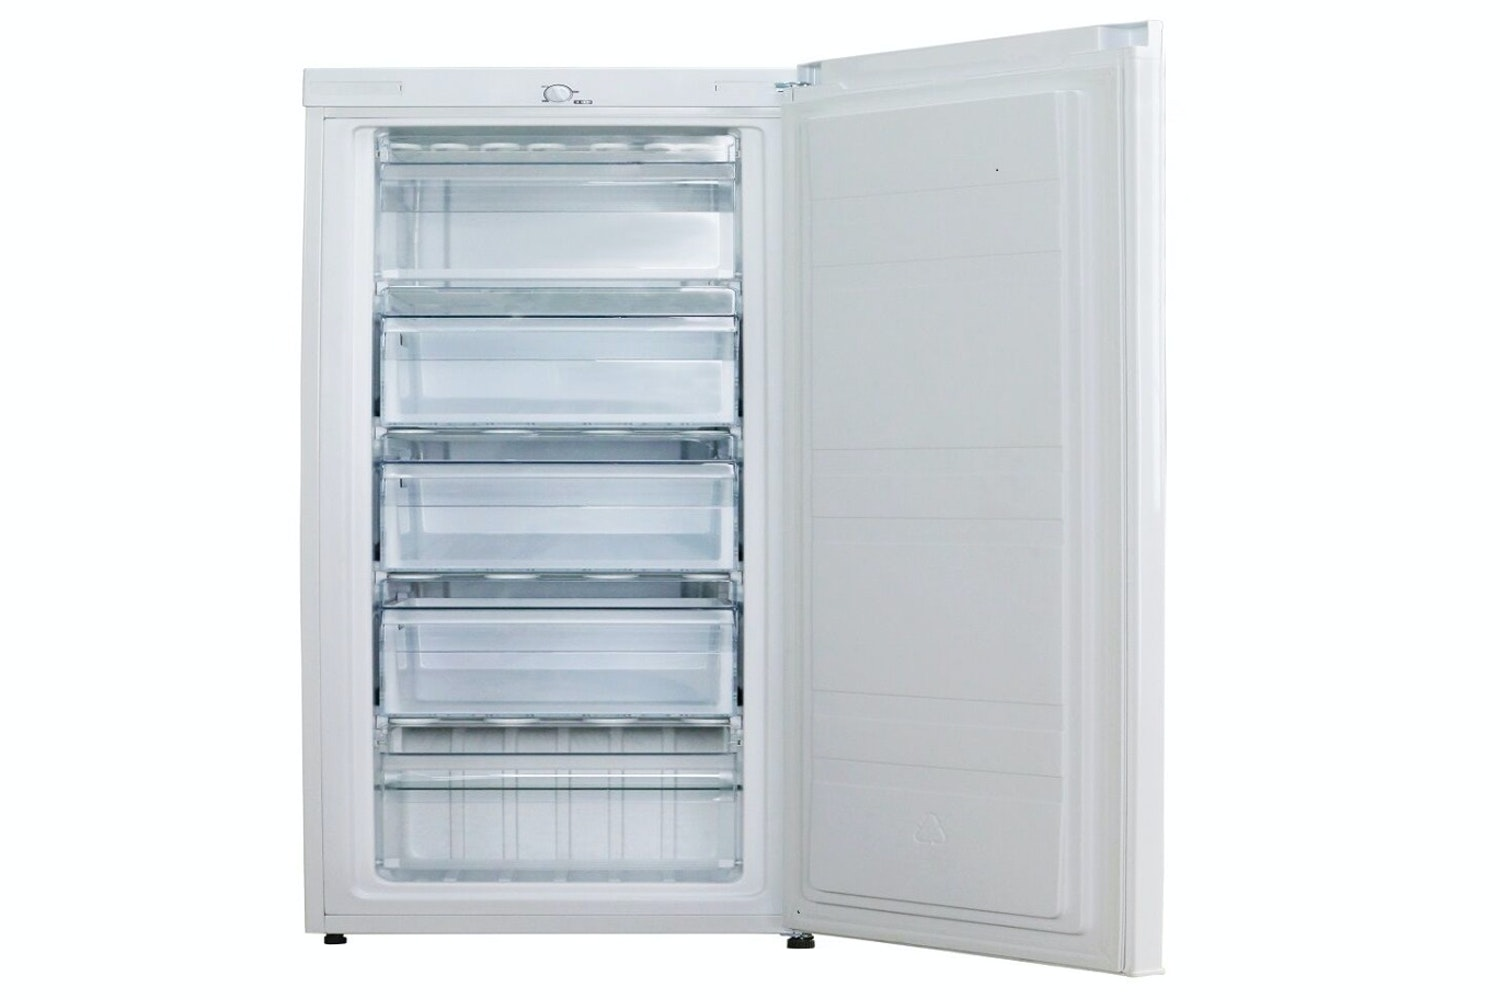 Belling 157L Freestanding Upright Freezer | BFZ157WH